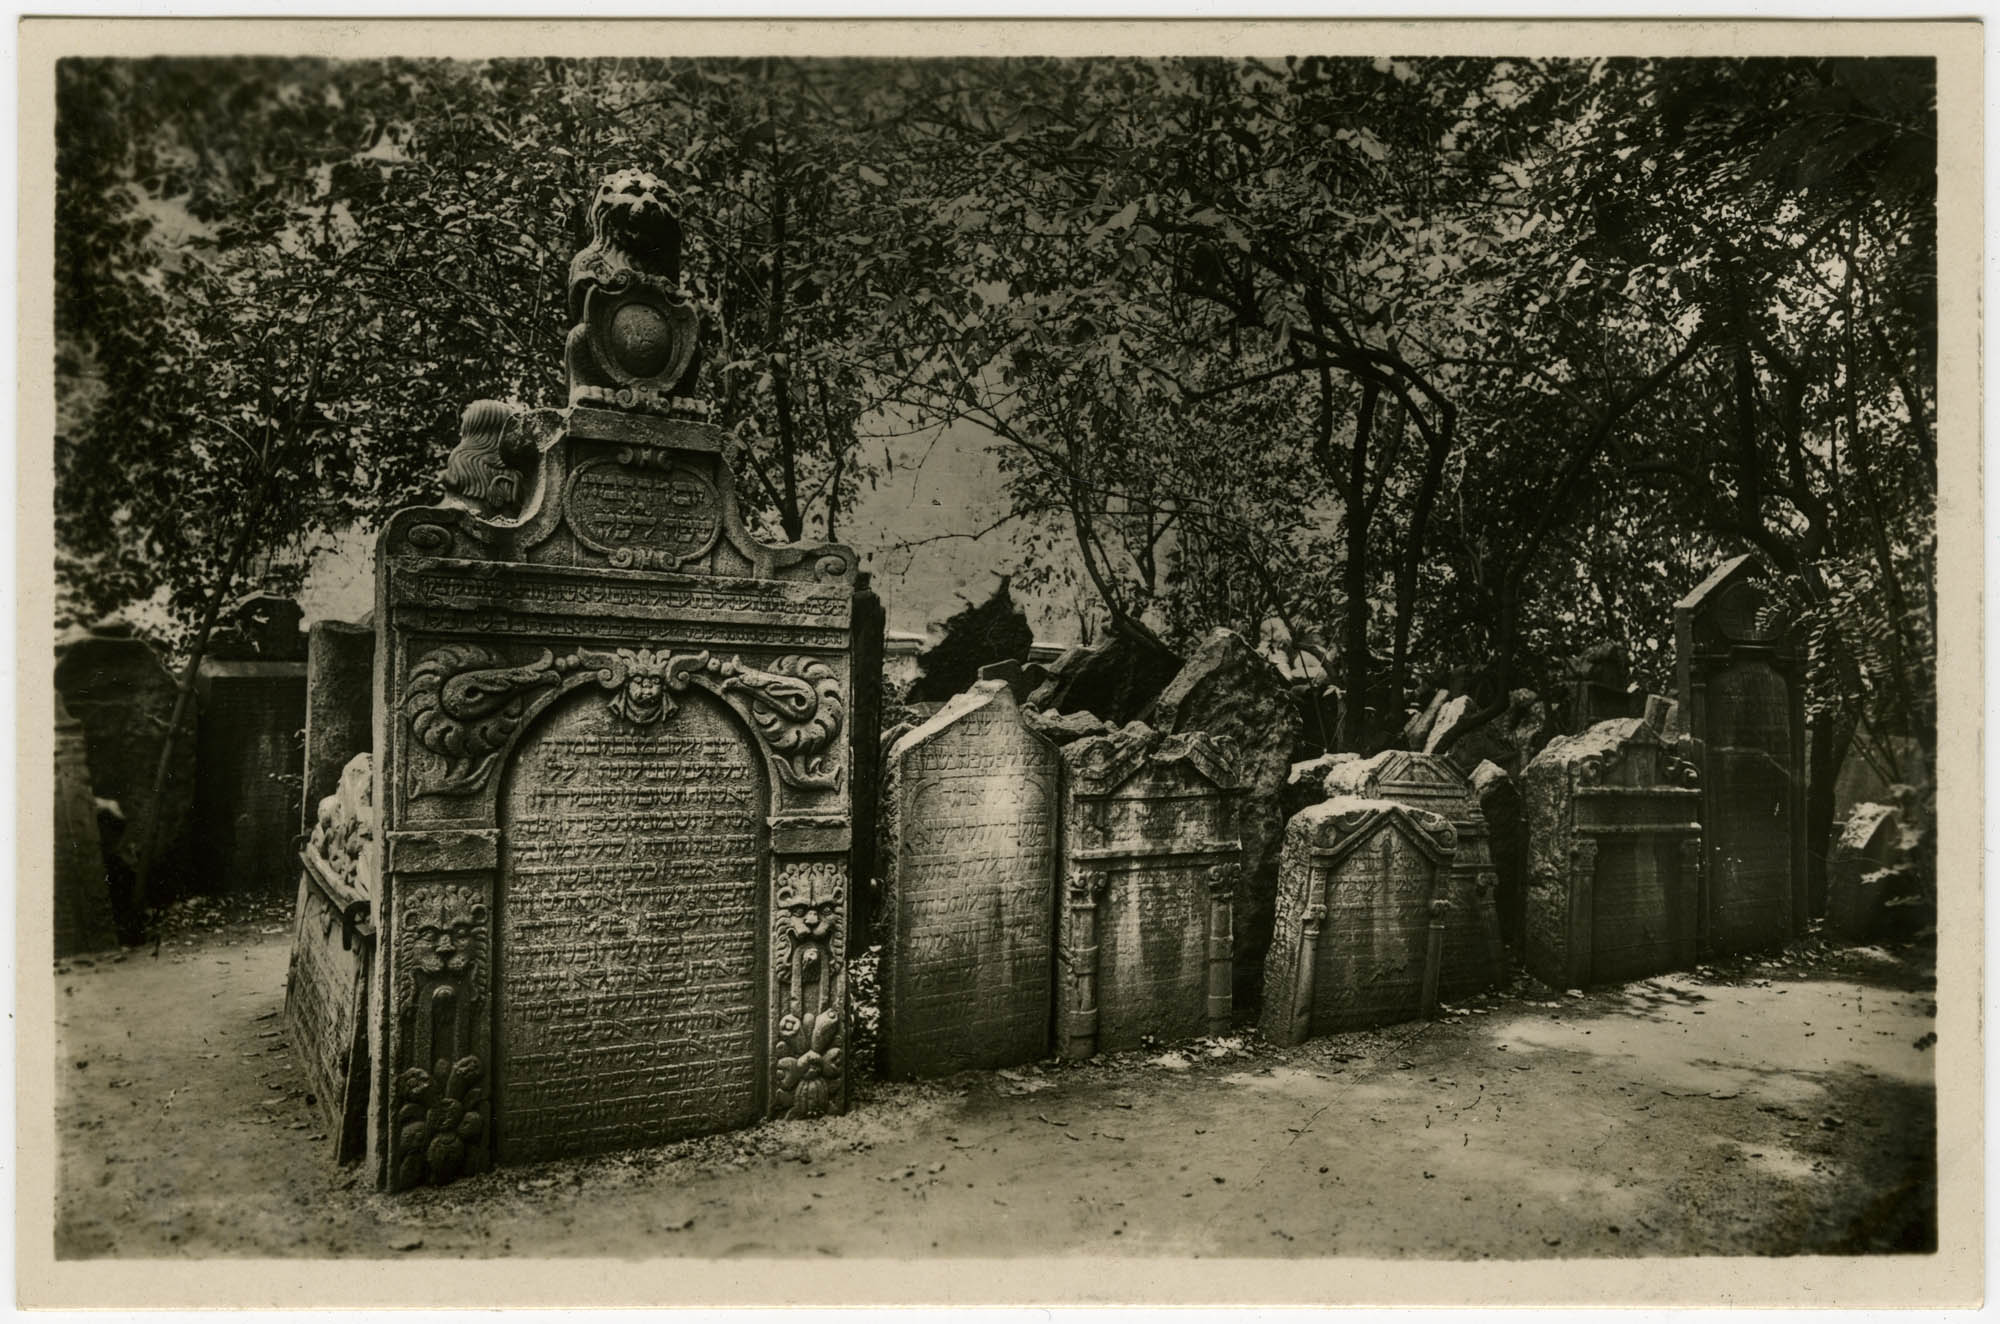 בהק' הישן בפראג / Praha. Skupina hrobů na starém židovském hřbitově. / Prague. Le vieux cimetière juif. / Prag. Grabmalgruppen am alten jüdischen Friedhof. / Prague. The ancient Jewish churchyard.